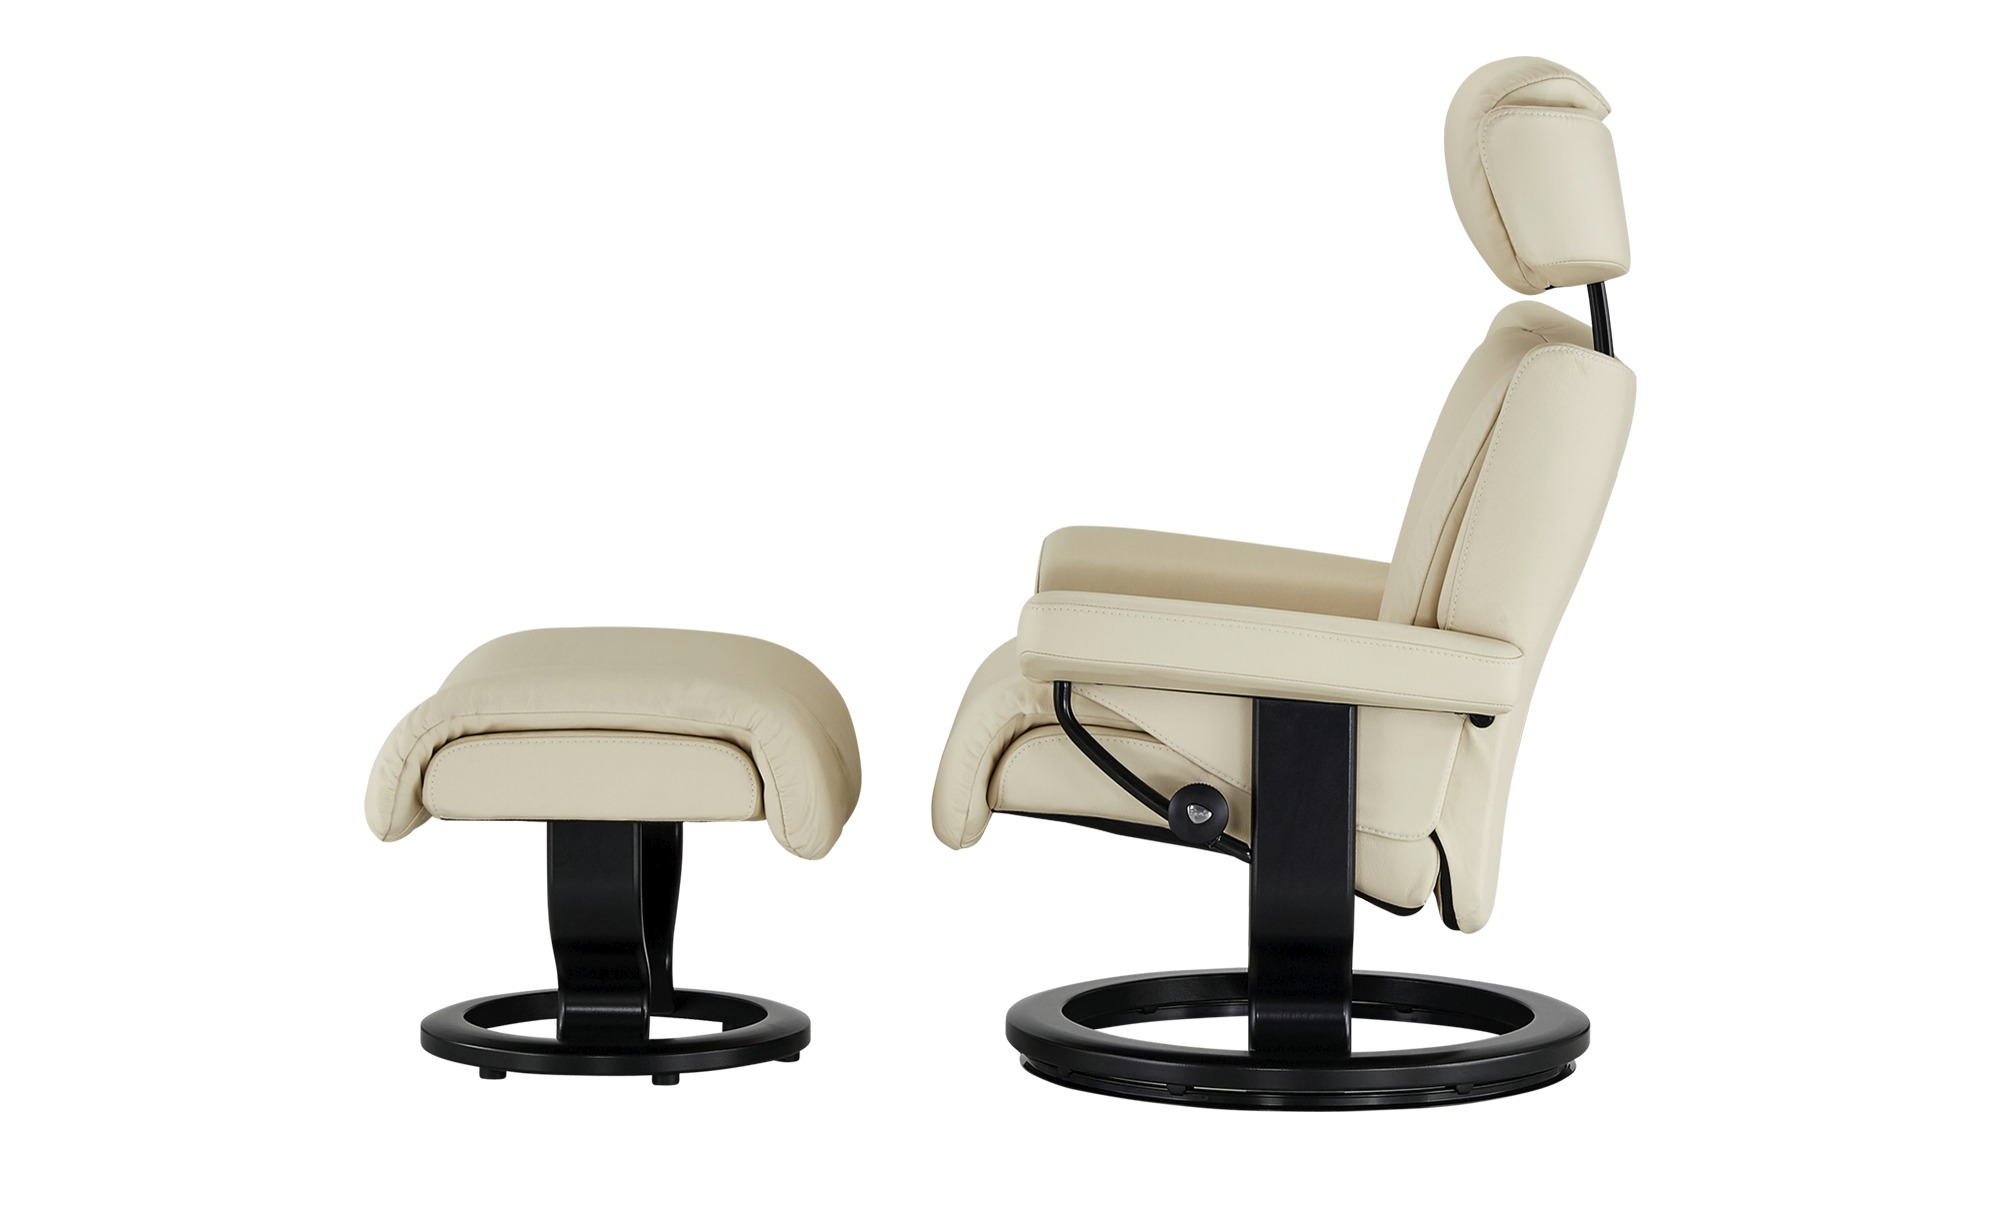 Stressless Relaxsessel Mit Hocker Magic L Creme Schwarz